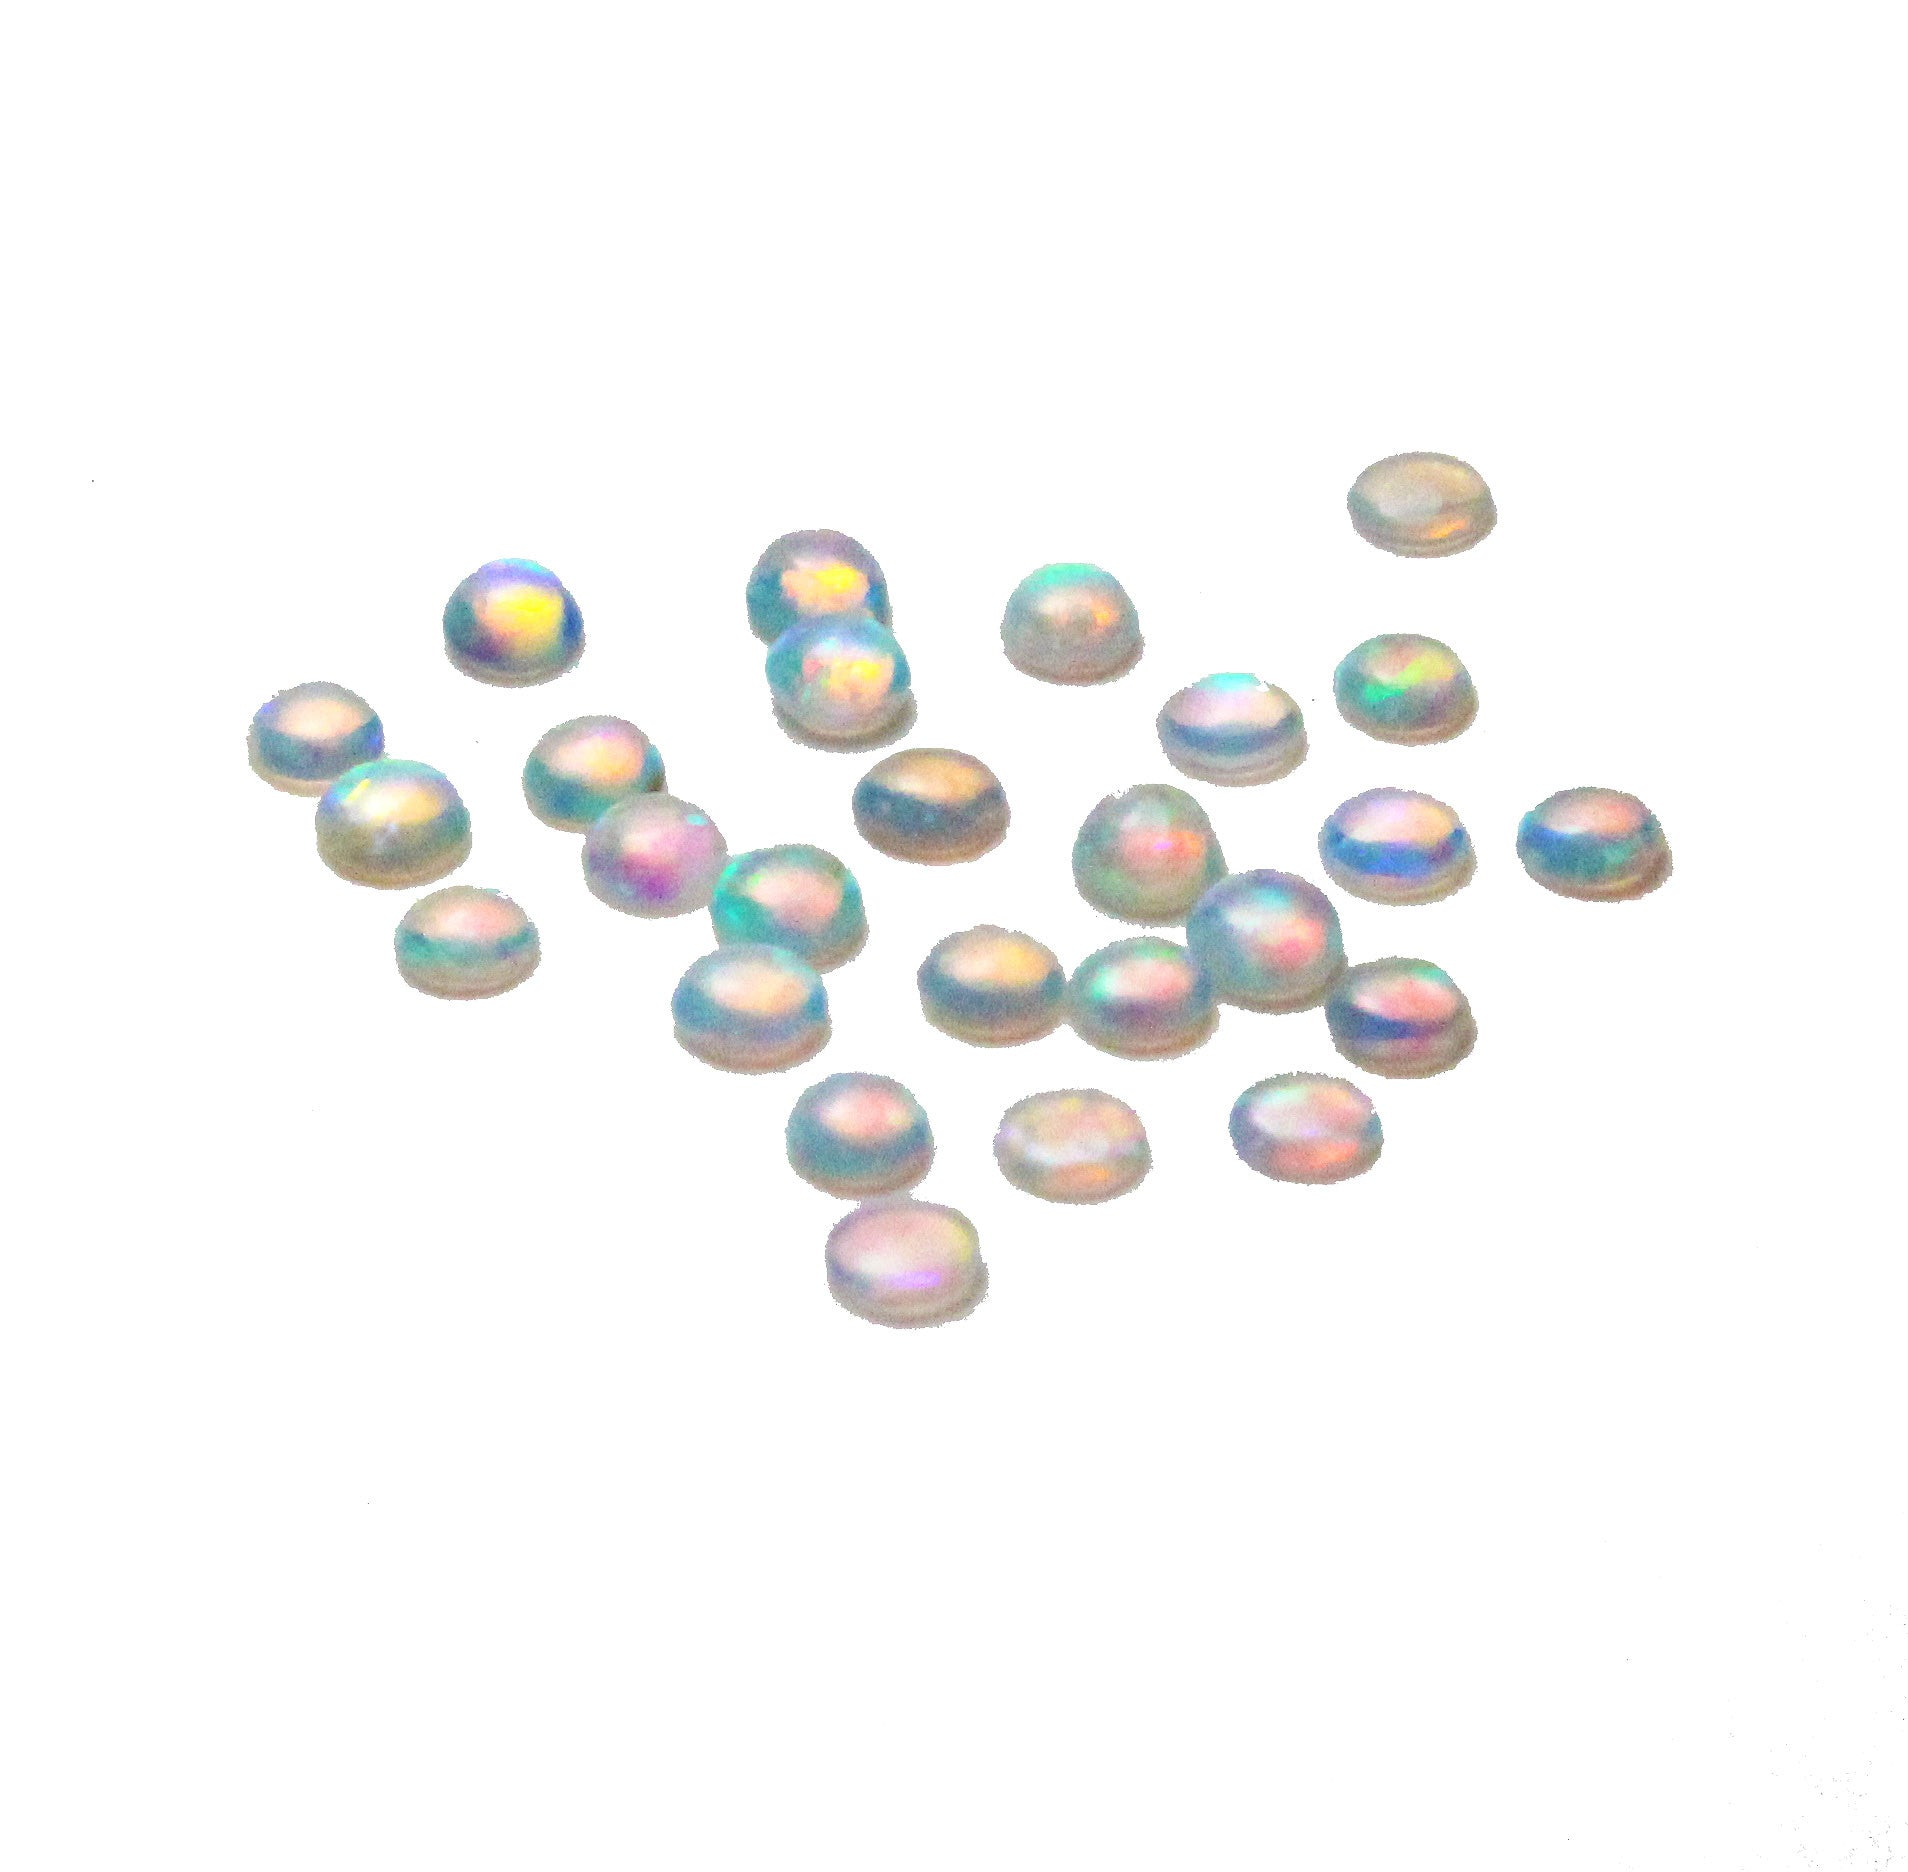 White opal small round cabochon 2.25-2.30mm loose gemstone - make a custom order CLICK HERE - Sarah Hughes - 1